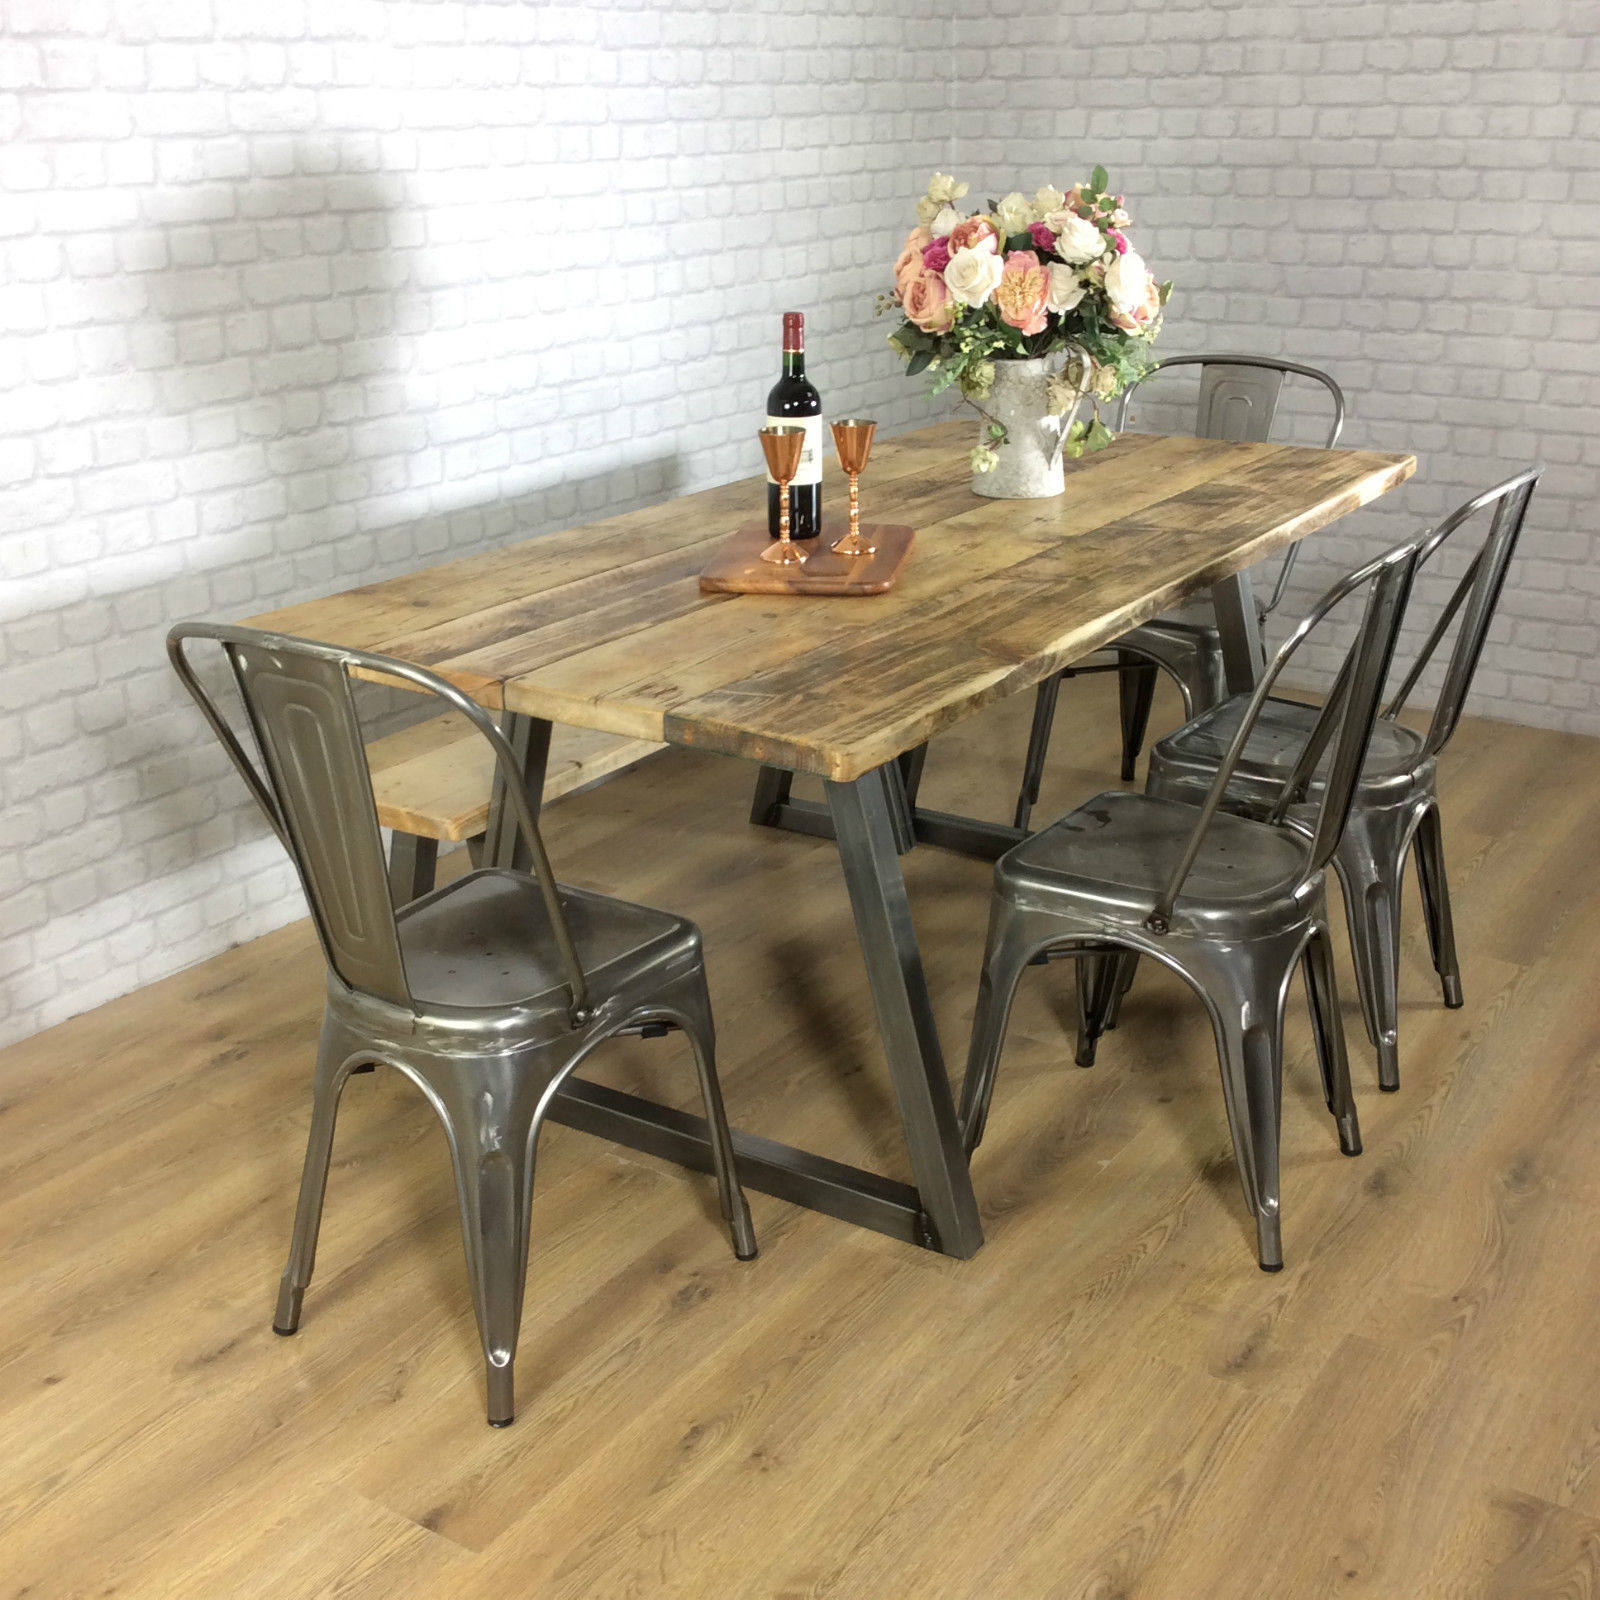 Rustic Dining Table Industrial 6 8 Seater Solid Reclaimed Wood Metal B Shabby Bear Cottage